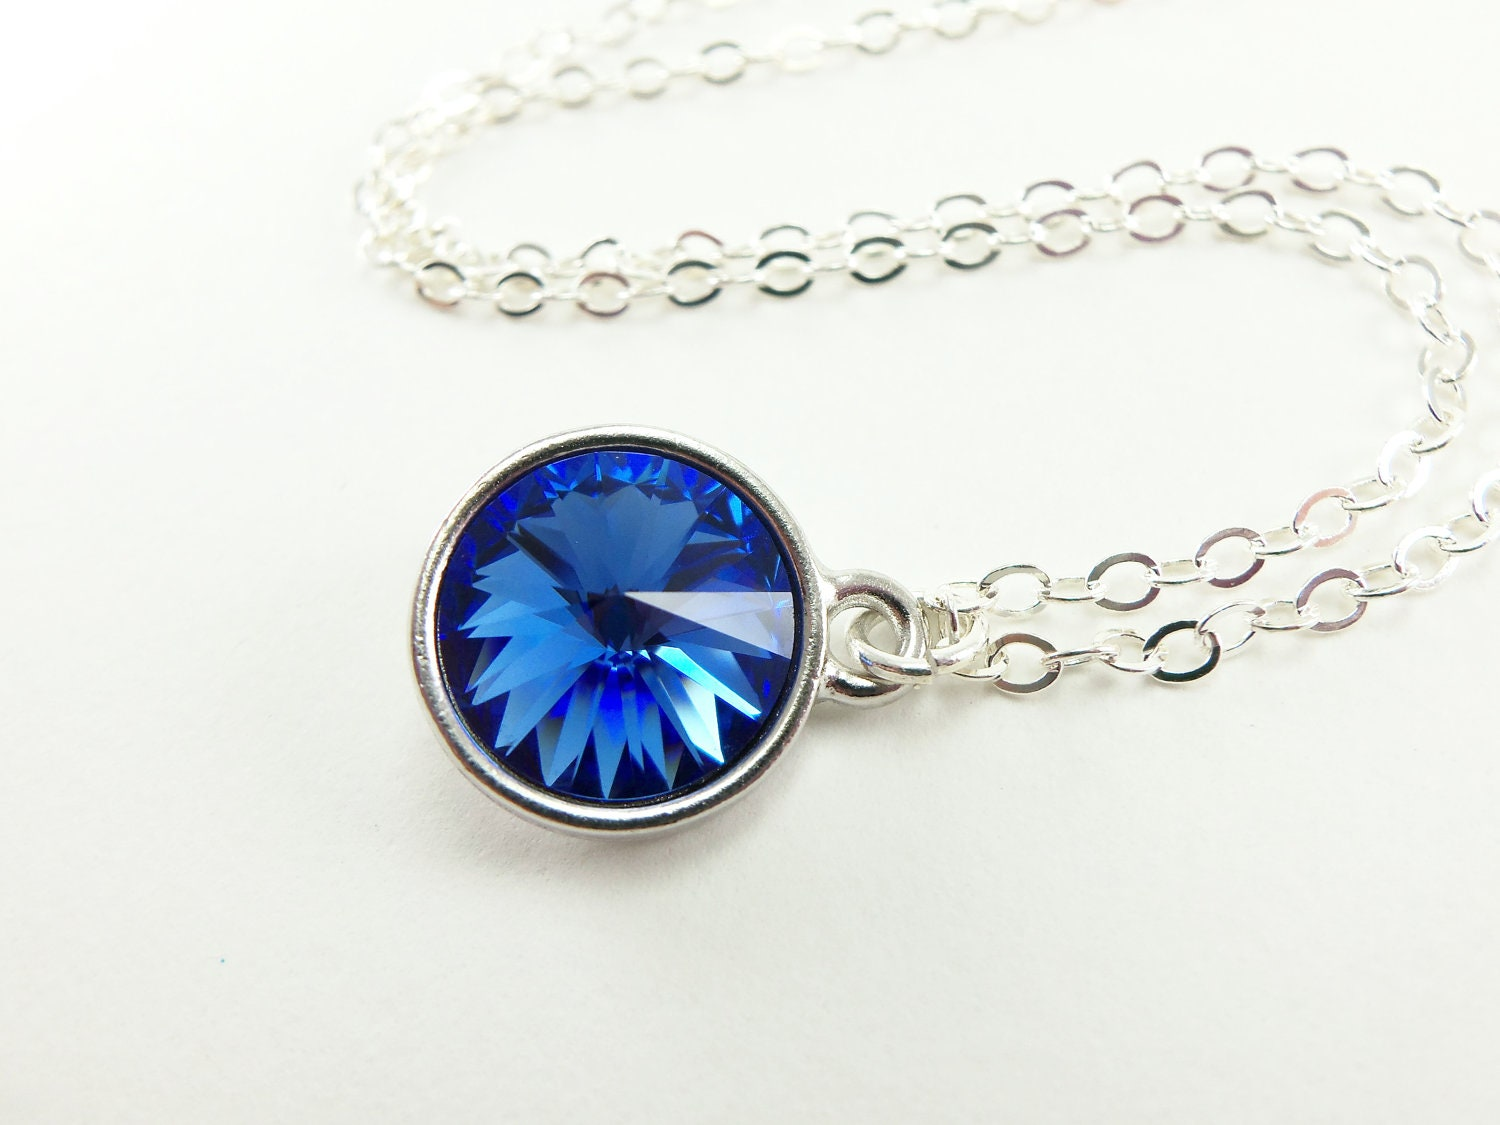 capellastyle product pendant blue snowflake crystal necklaces